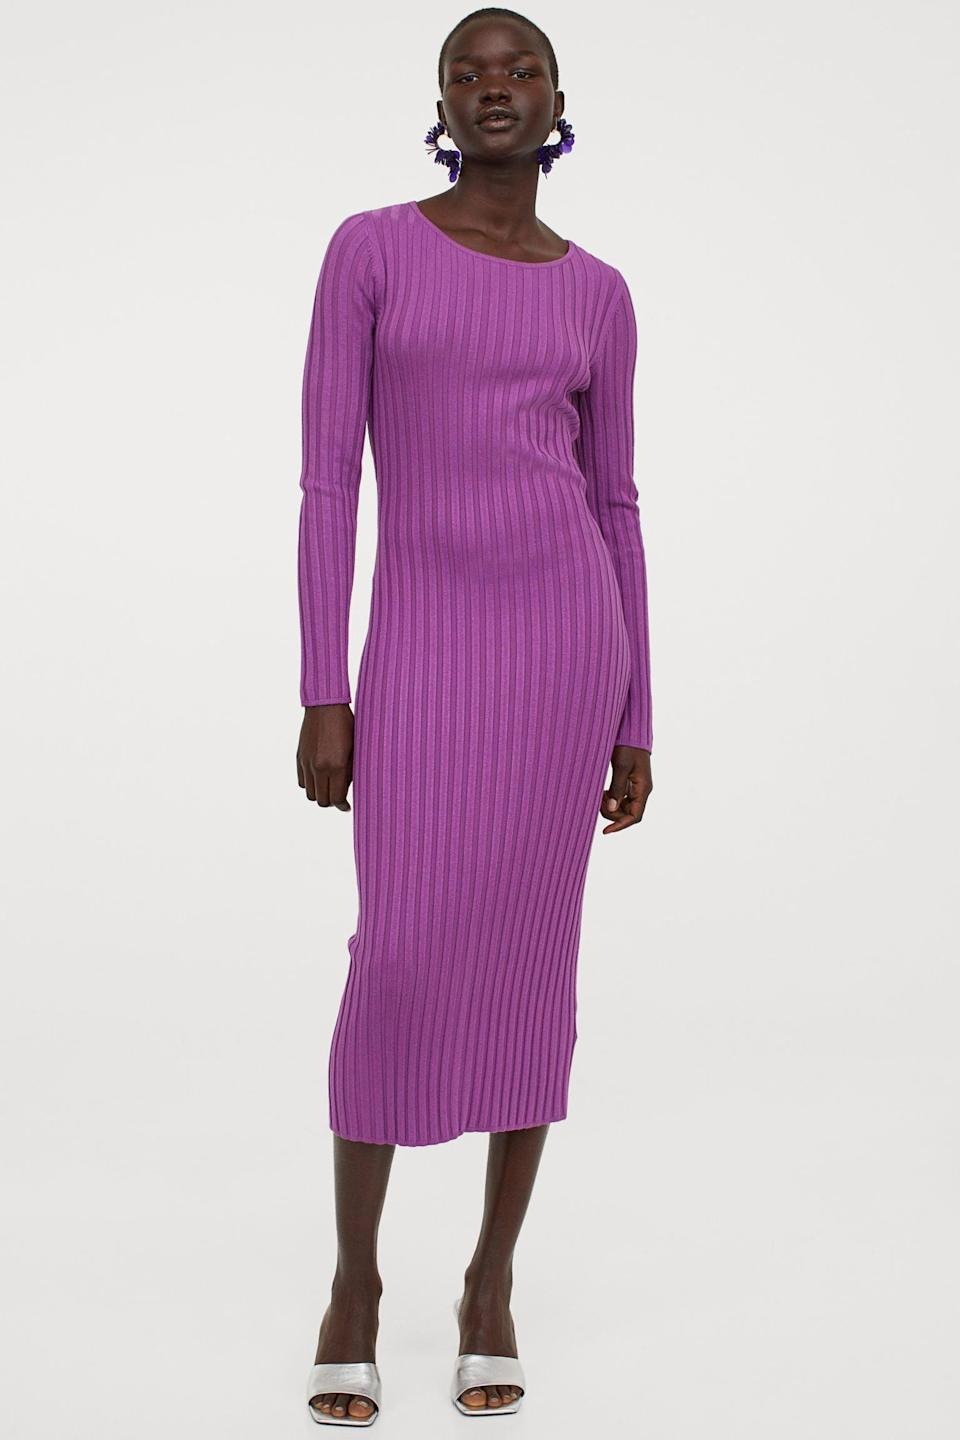 <p>Nothing like the pop of color from this eye-catching <span>Rib-Knit Dress</span> ($32, originally $40).</p>